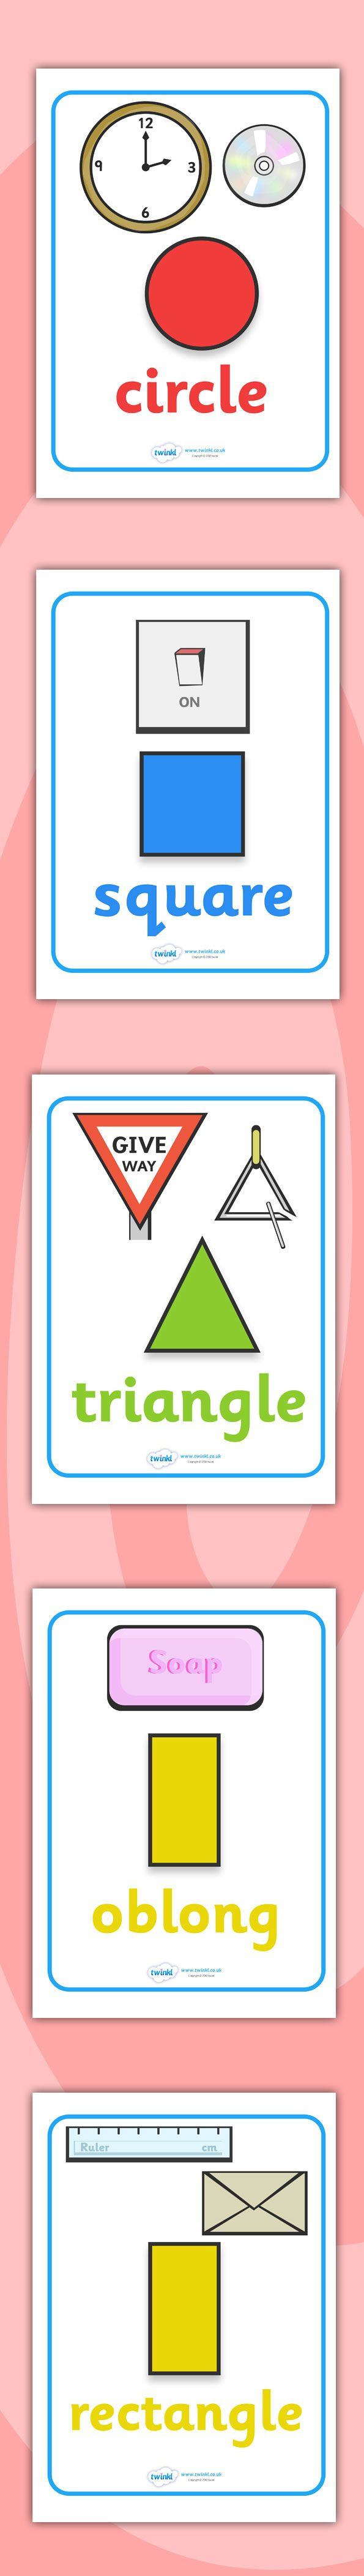 Twinkl Resources >> 2D Shape Posters with Everyday Examples >> Printable resources for Primary, EYFS, KS1 and SEN.  Thousands of classroom displays and teaching aids! Numeracy, Maths, Shapes